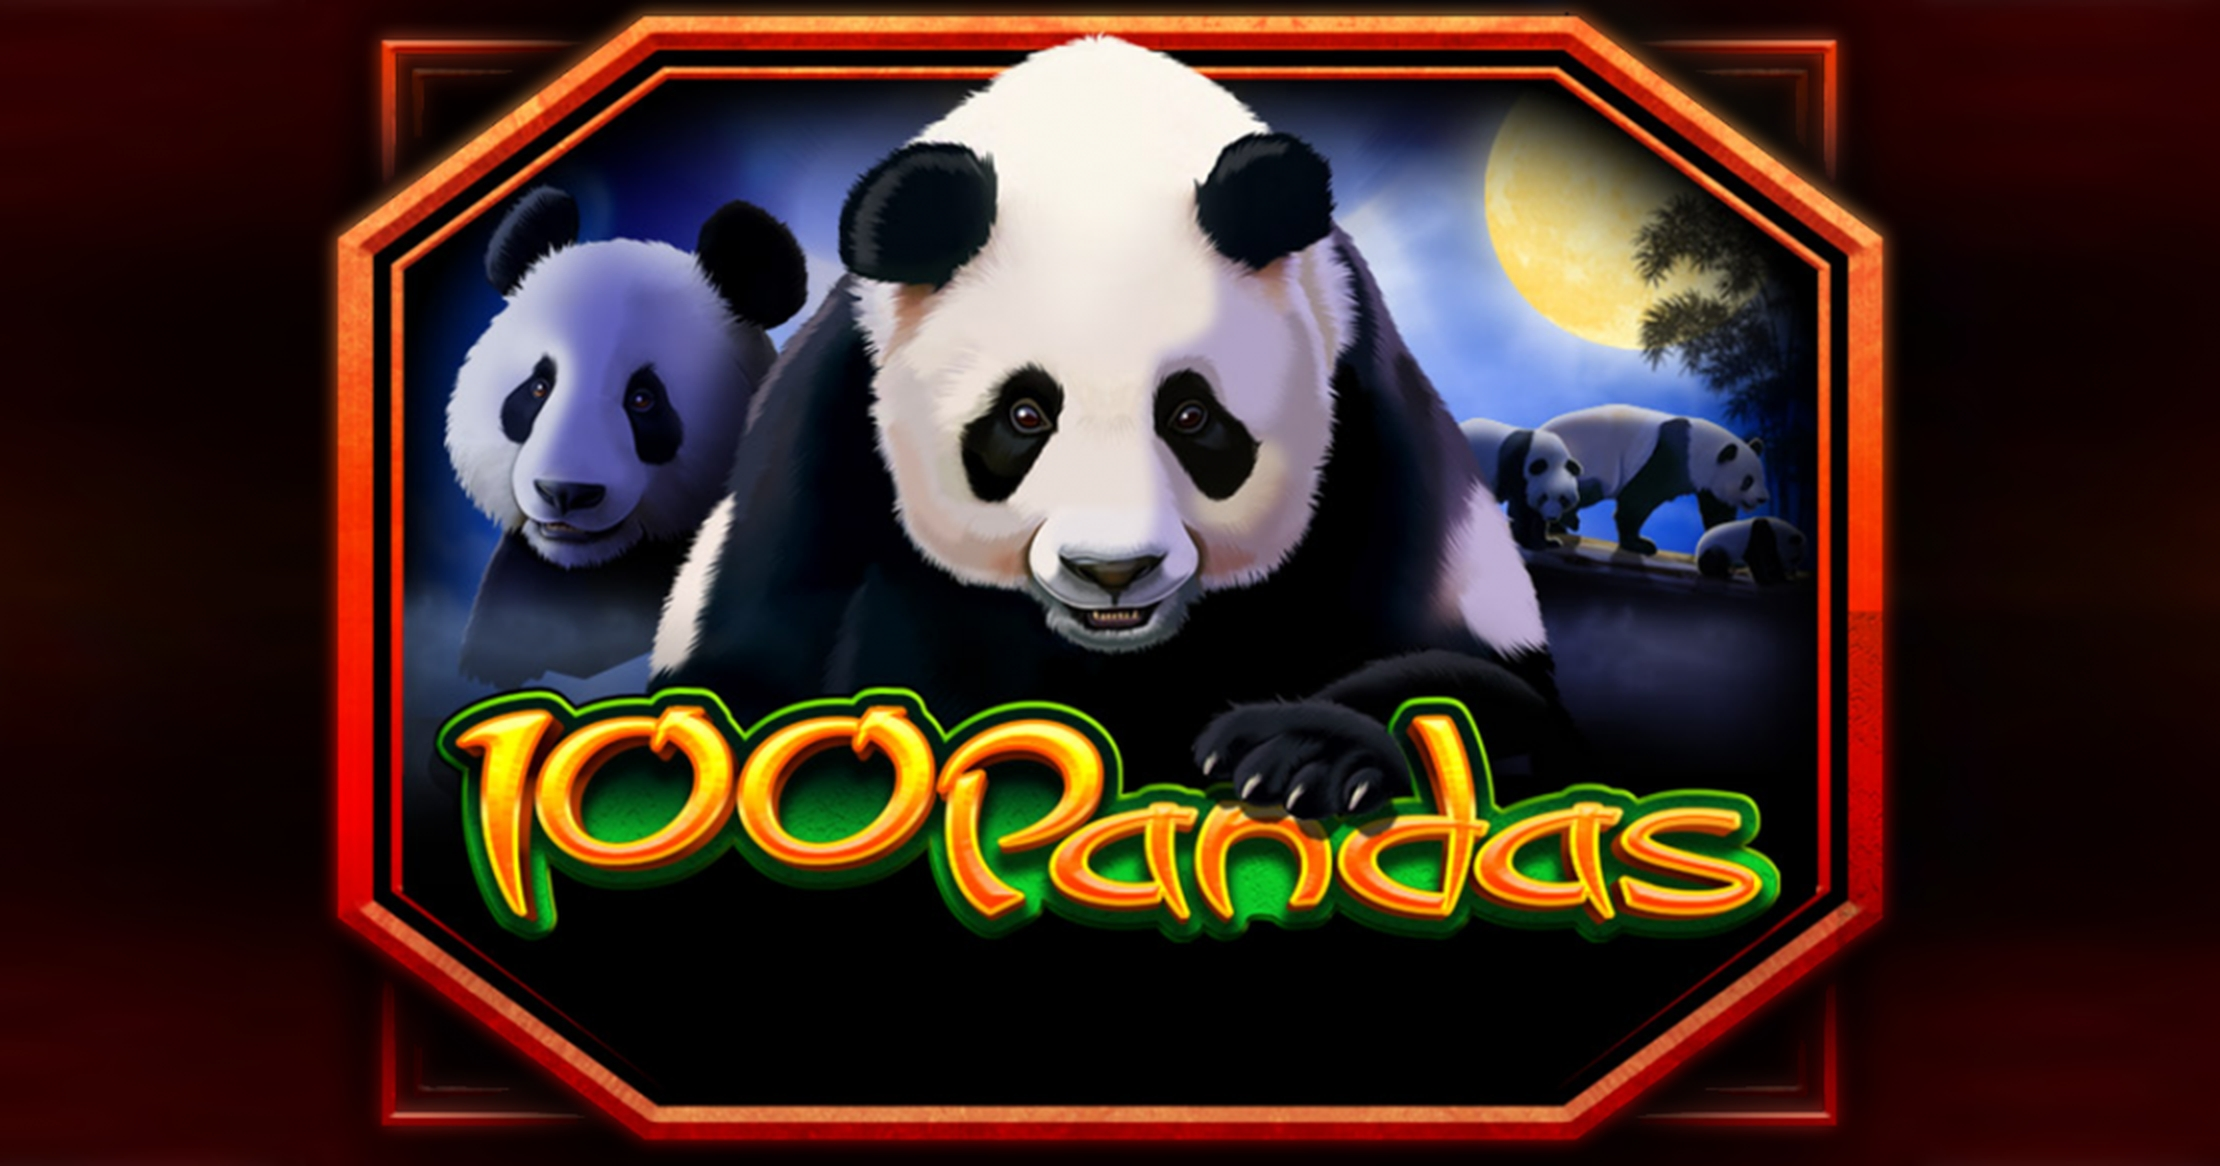 The 100 Pandas Online Slot Demo Game by IGT